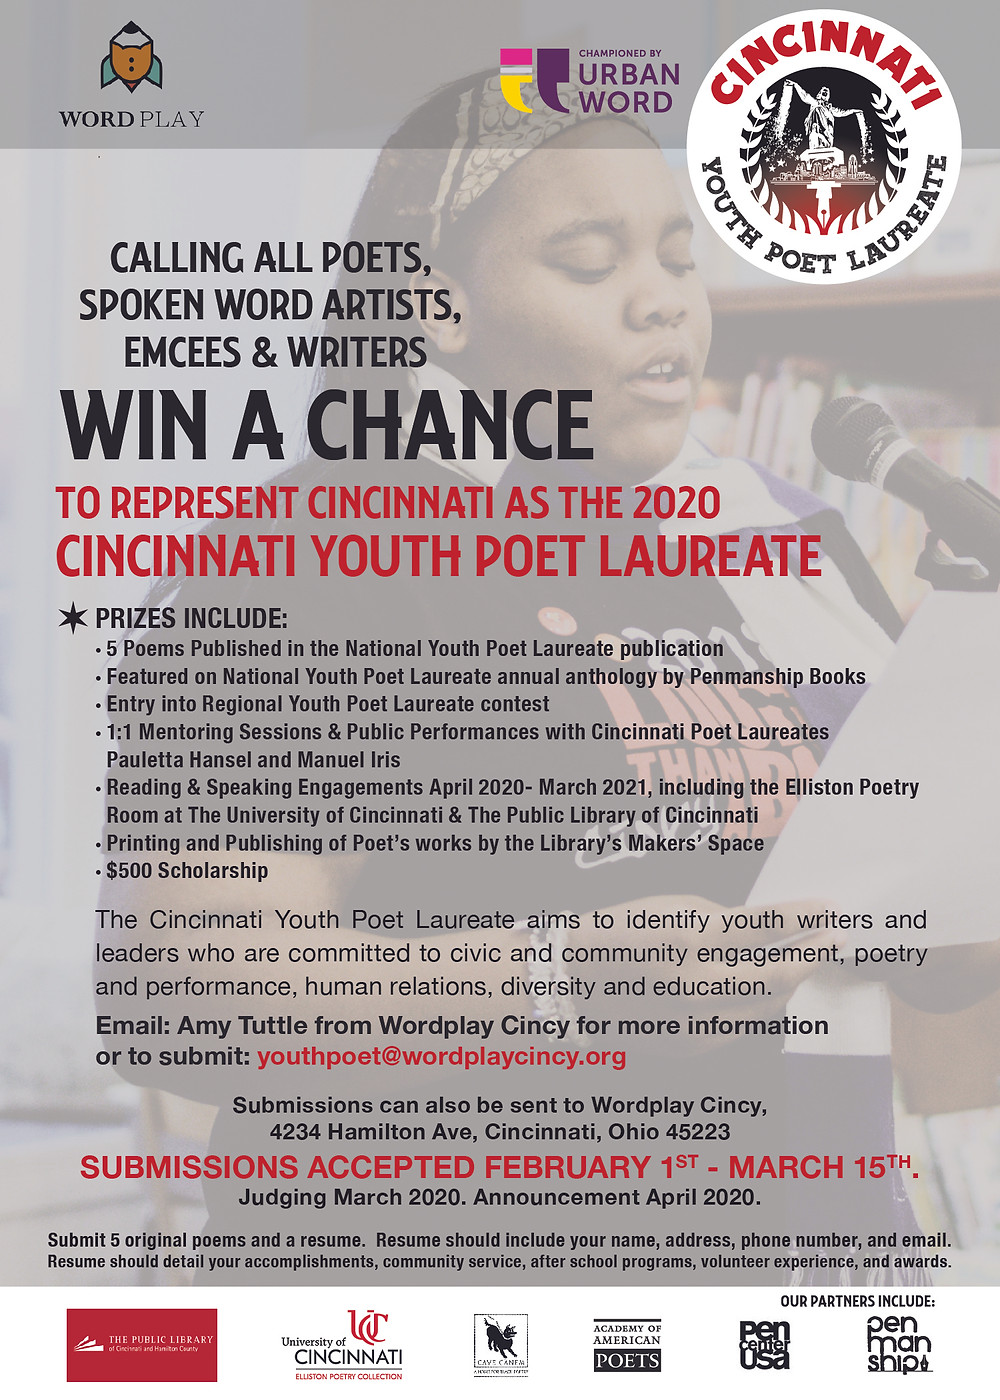 CALING ALL YOUNG POETS (14 TO 17 YEARS OLD)